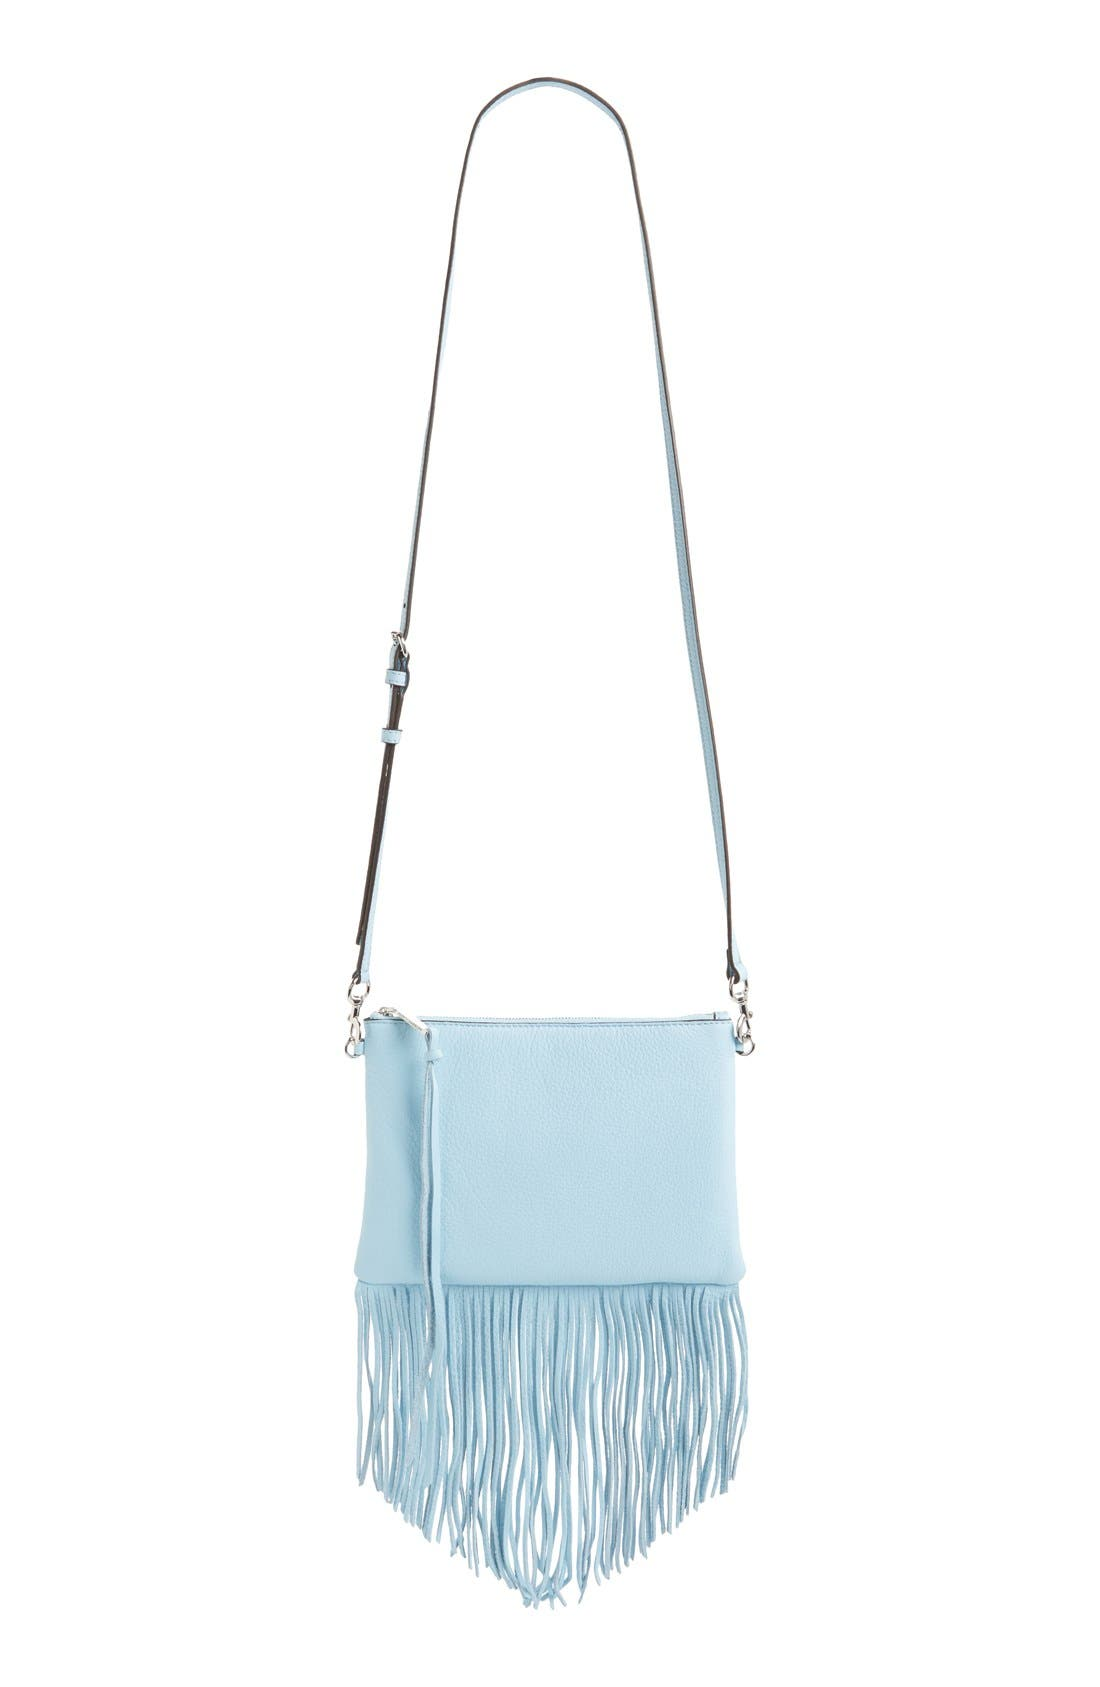 Main Image - Rebecca Minkoff 'Fringe Jon' Leather Crossbody Bag